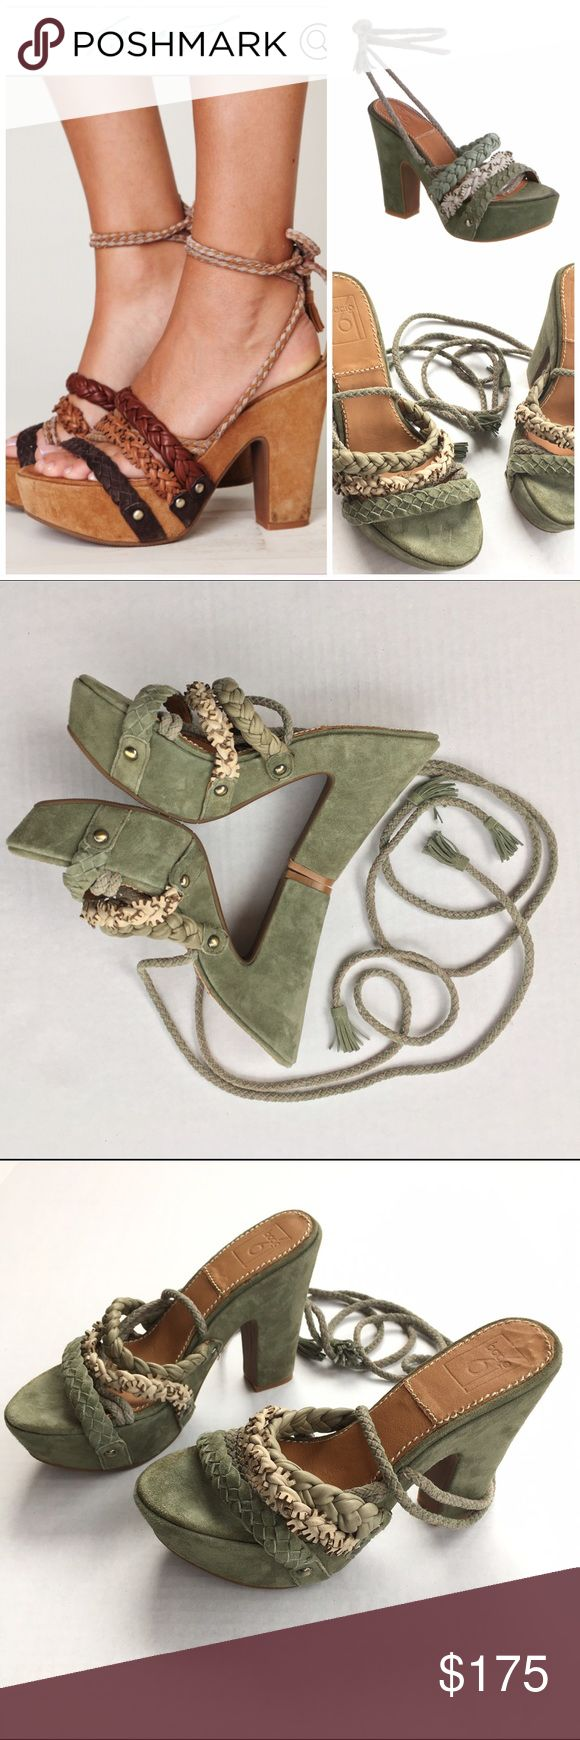 "FP Bacio 61 Pandino Green Suede Platform Sandals 8 Free People Bacio 61's Pandino platform sandal is a must have for your summer boho lazy days.  This retro platform features a green suede platform heel and leather sole, 2"" front platform and a 5"" back heel. Beautiful braided leather ankle straps, and metal stud detailing around the base.  Originally priced at $175. These shoes are like new- no signs of wear!  🎀Search my closet for your size 🎀BUNDLE and SAVE! 🎀REASONABLE offers WELCOME…"